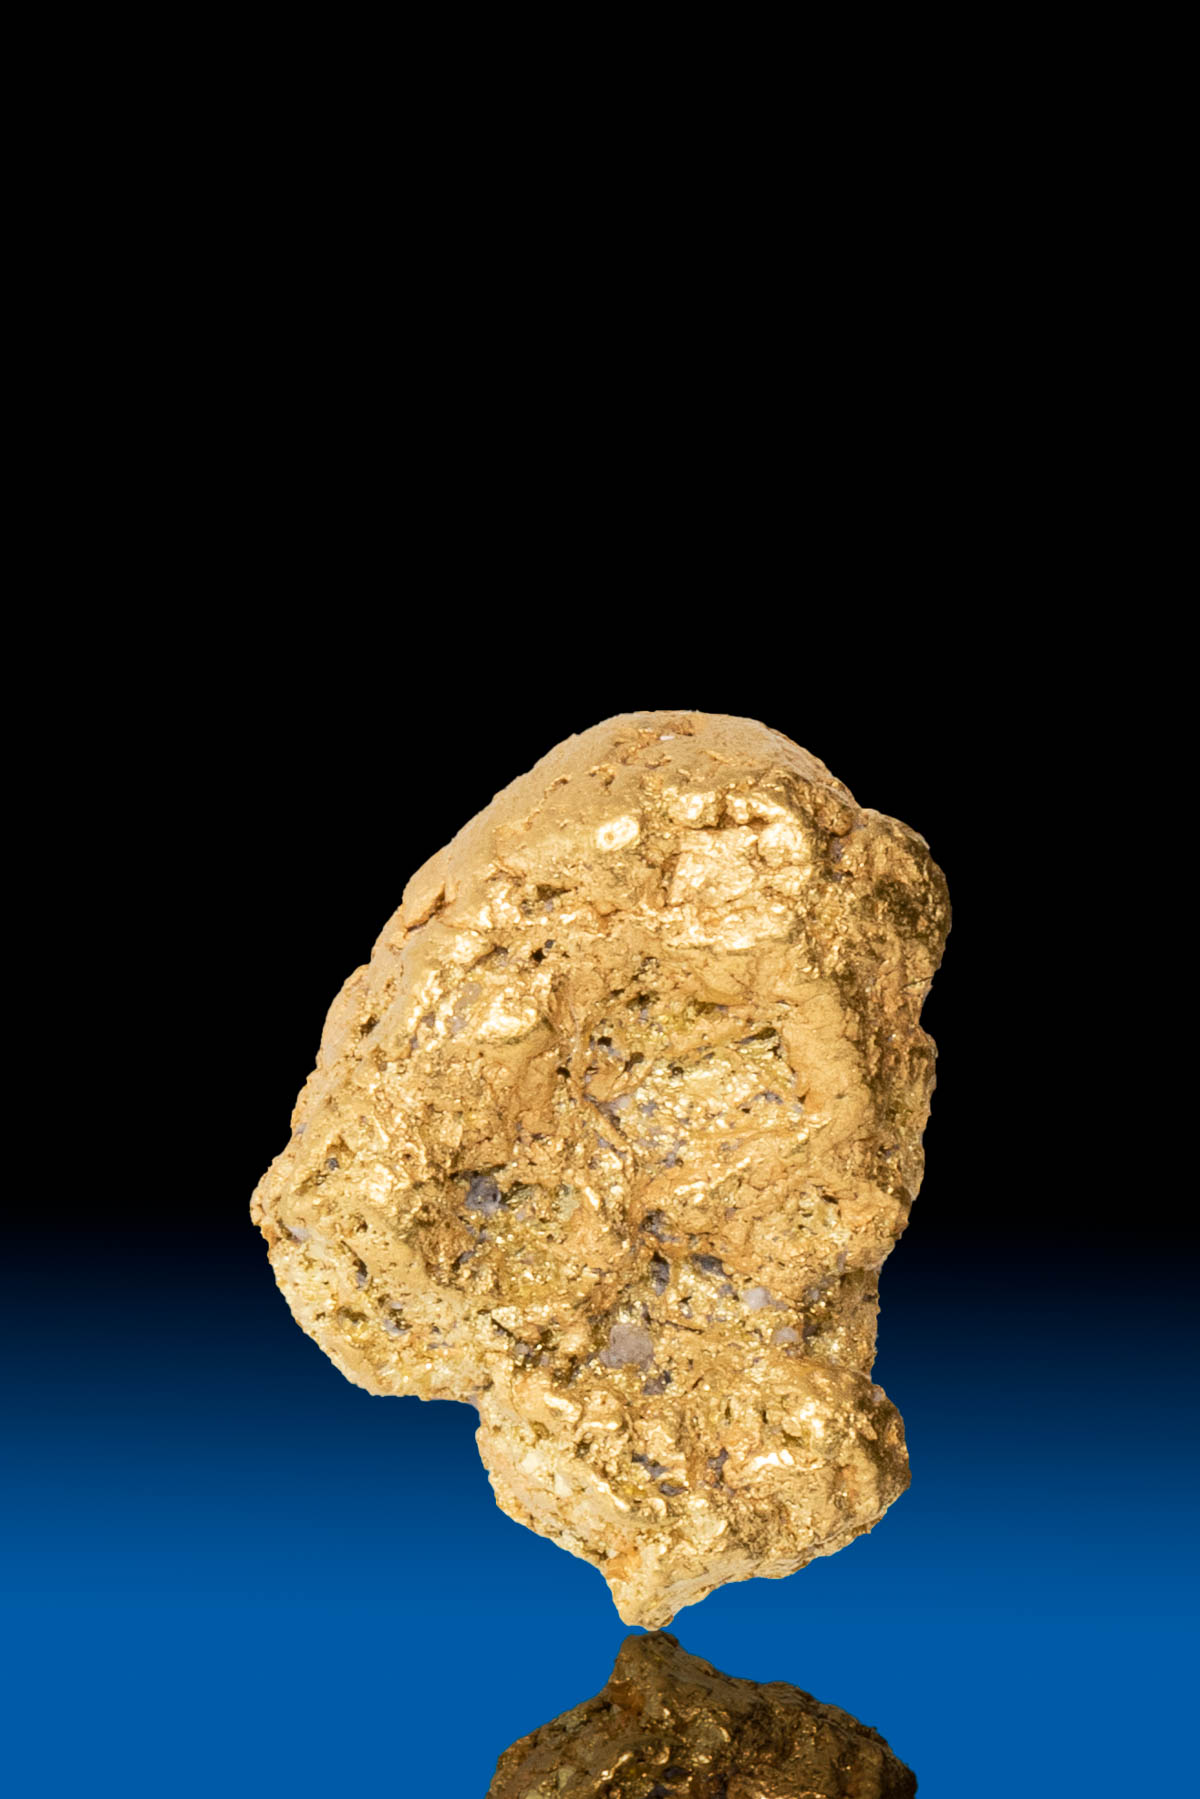 Rounded Rugged Yukon Natural Gold Nugget - 3.21 grams